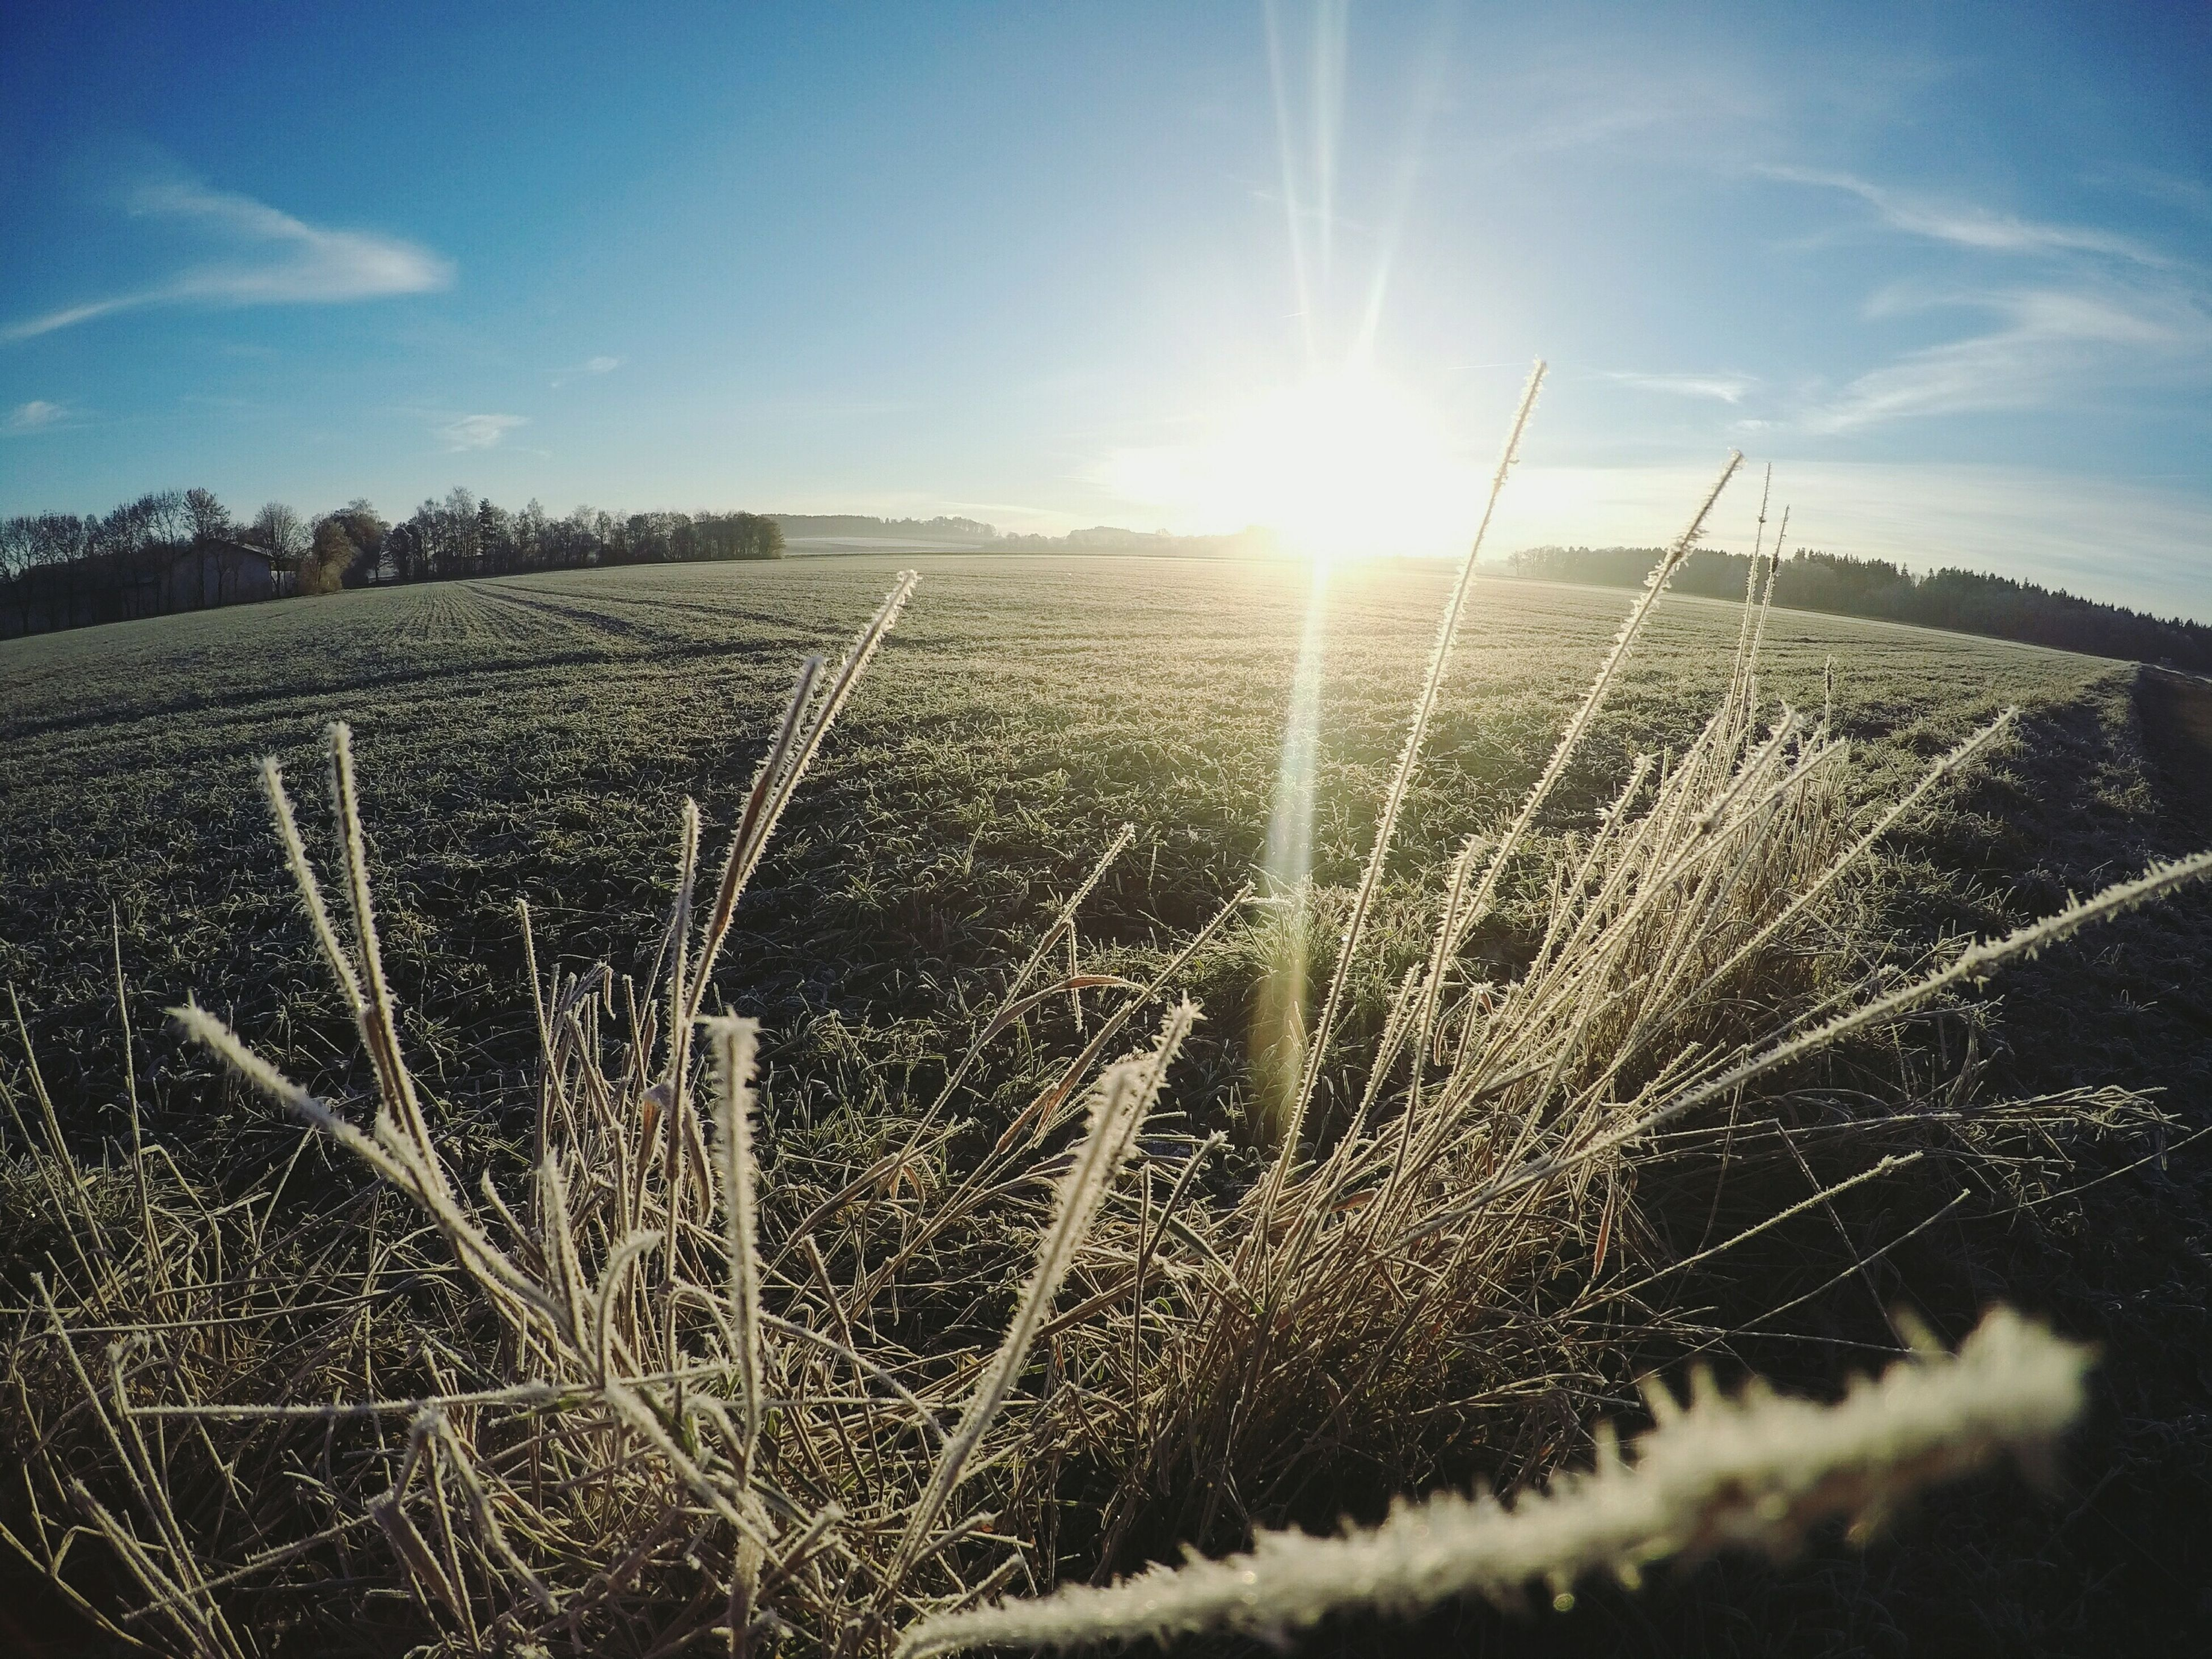 -7℃ Beauty In Nature Day Agriculture Growth Rural Scene Field Crop  Farm Sunlight Cereal Plant Plant Sky Landscape Nature Sunbeam Wheat Close-up No People Outdoors Ear Of Wheat Neufarn Bavarian Landscape Bavaria Bayern Germany First Eyeem Photo